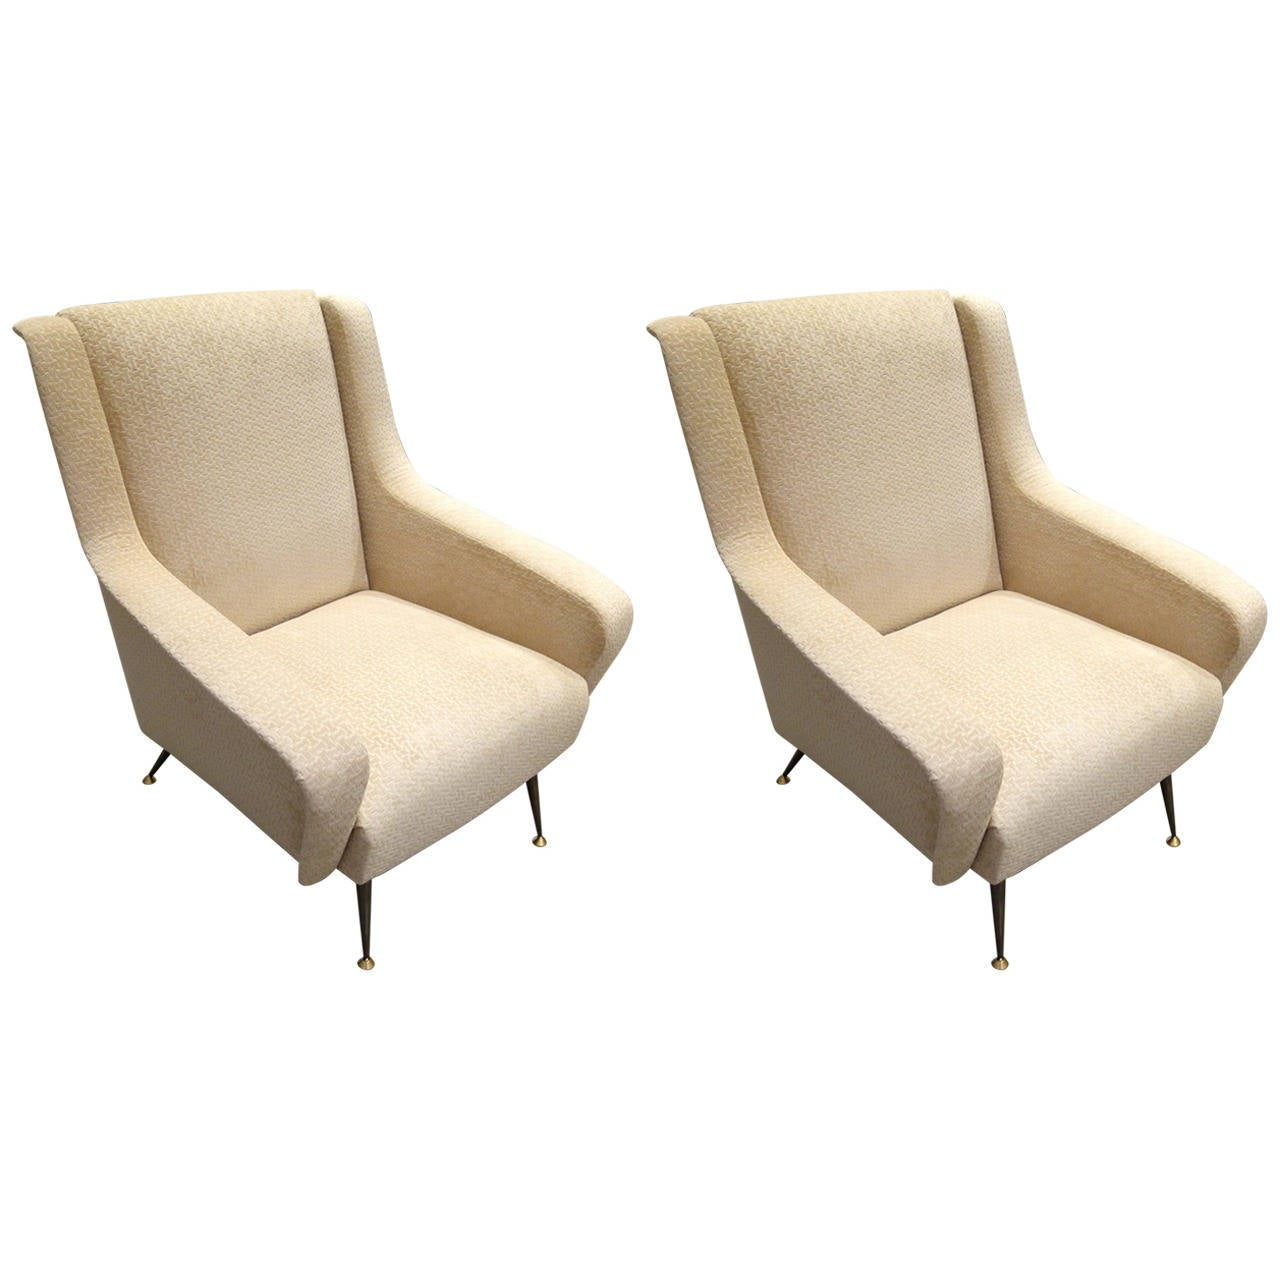 Pair Of Mid Century Modern Italian Sculptural Lounge